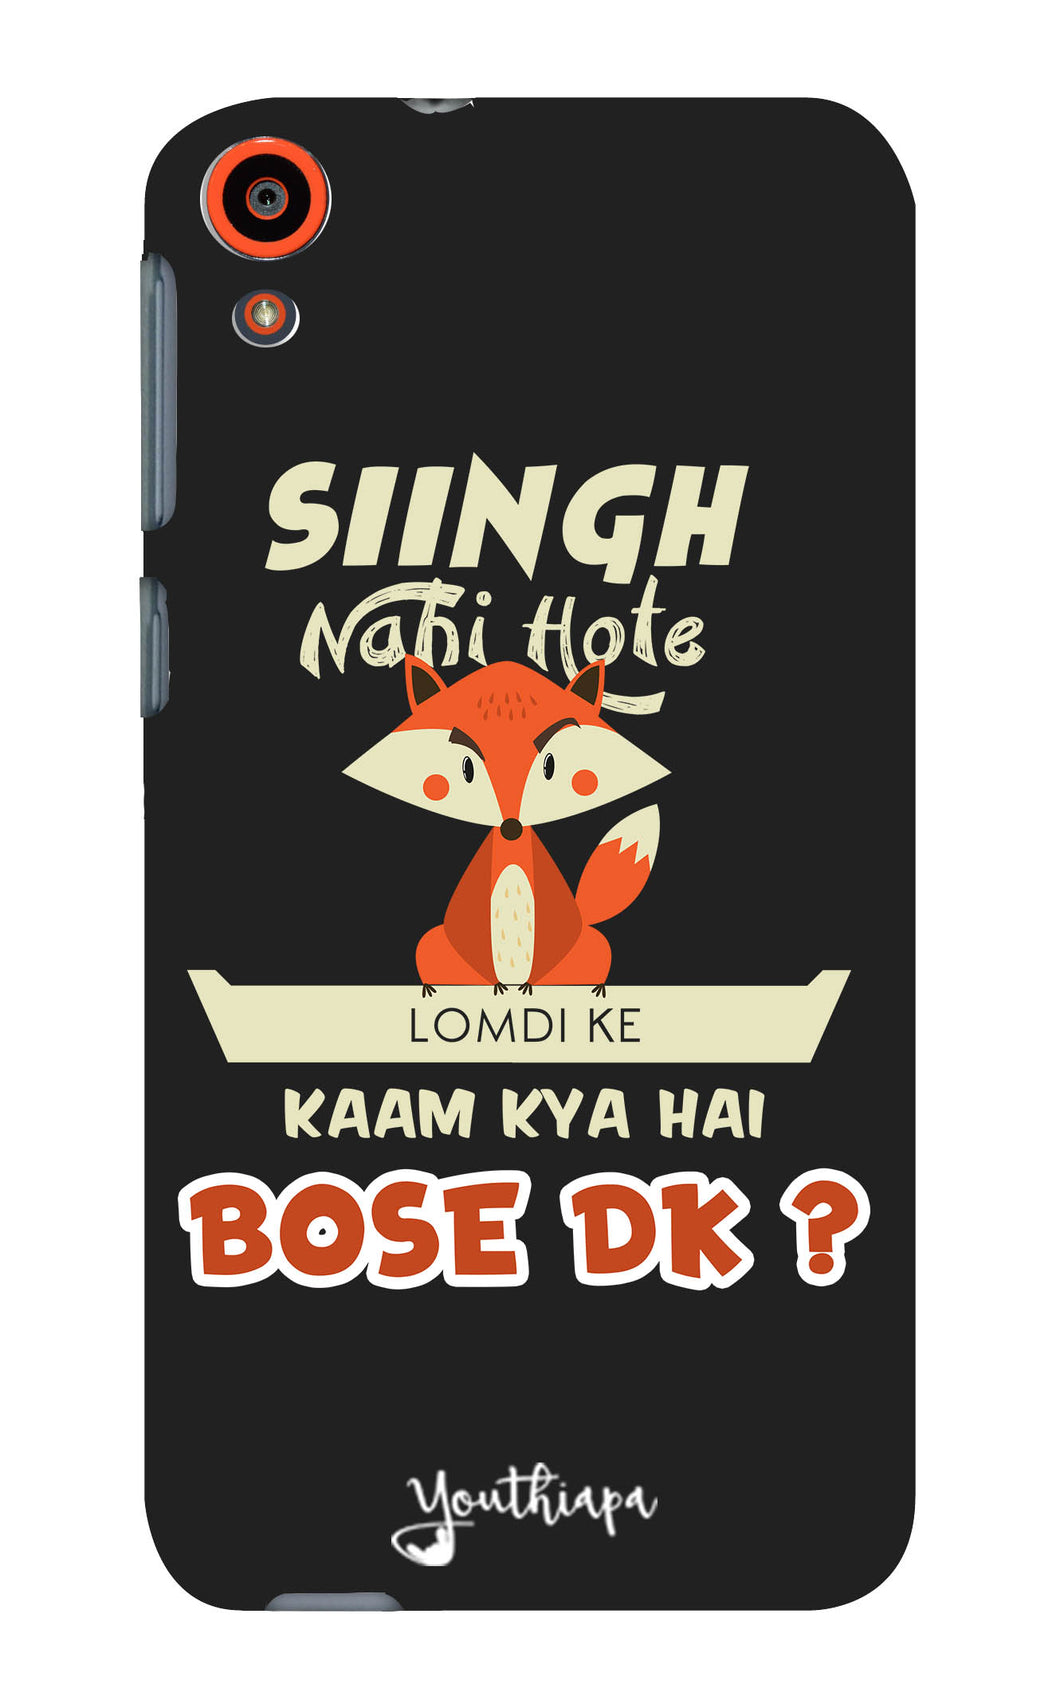 Singh Nahi Hote for Htc Desire 820